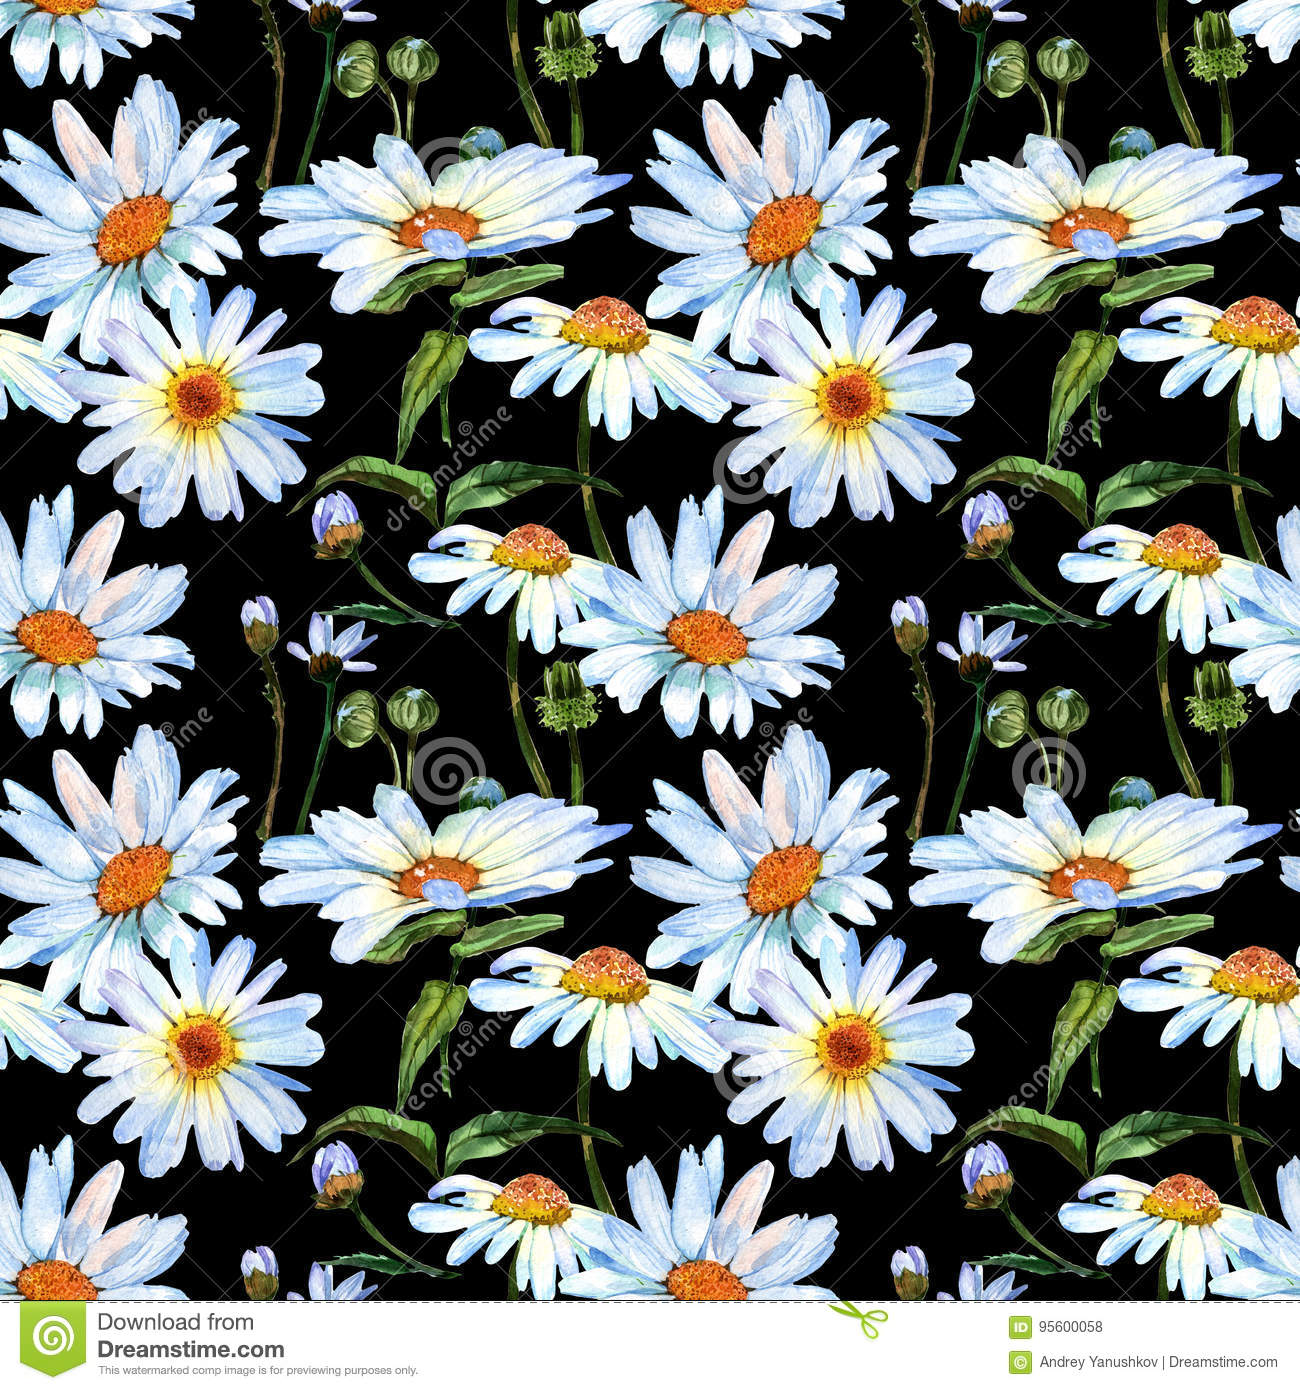 Wildflower Daisy Flower Pattern In A Watercolor Style Stock Photo